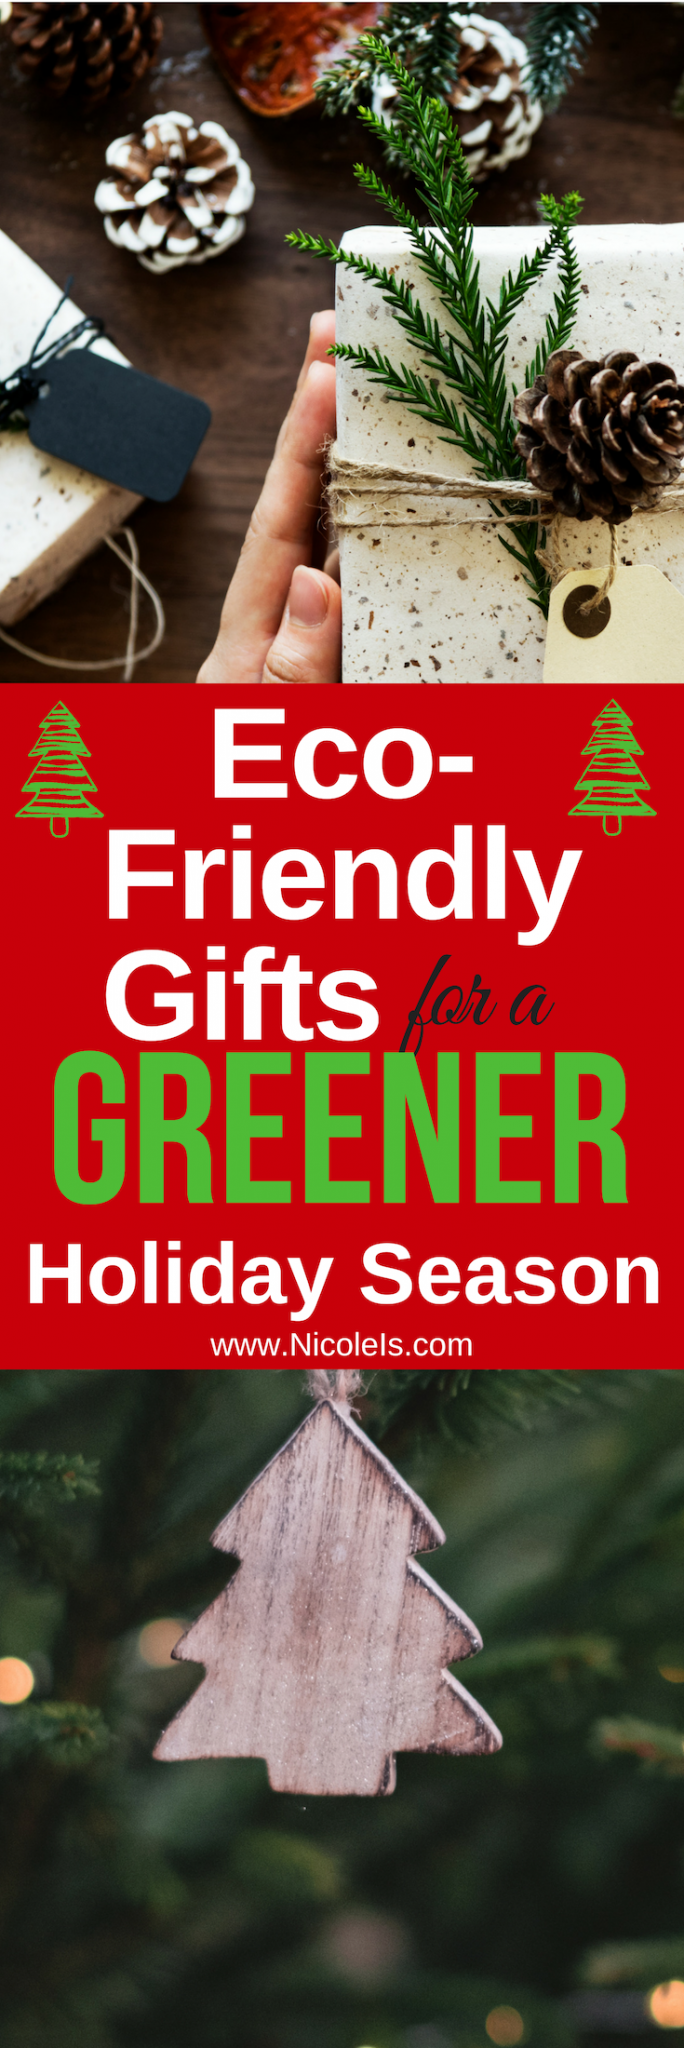 Eco-Friendly Gifts for Greener Holiday Season! www.NicoleIs.com Christmas Gifts | Holiday Gifts | Gifts for Her | Gifts for Him | Green Gifts | Sustainable Gifts | Sustainable Living | Vegan Gifts | Green Living | Eco-friendly Living | Organic Living